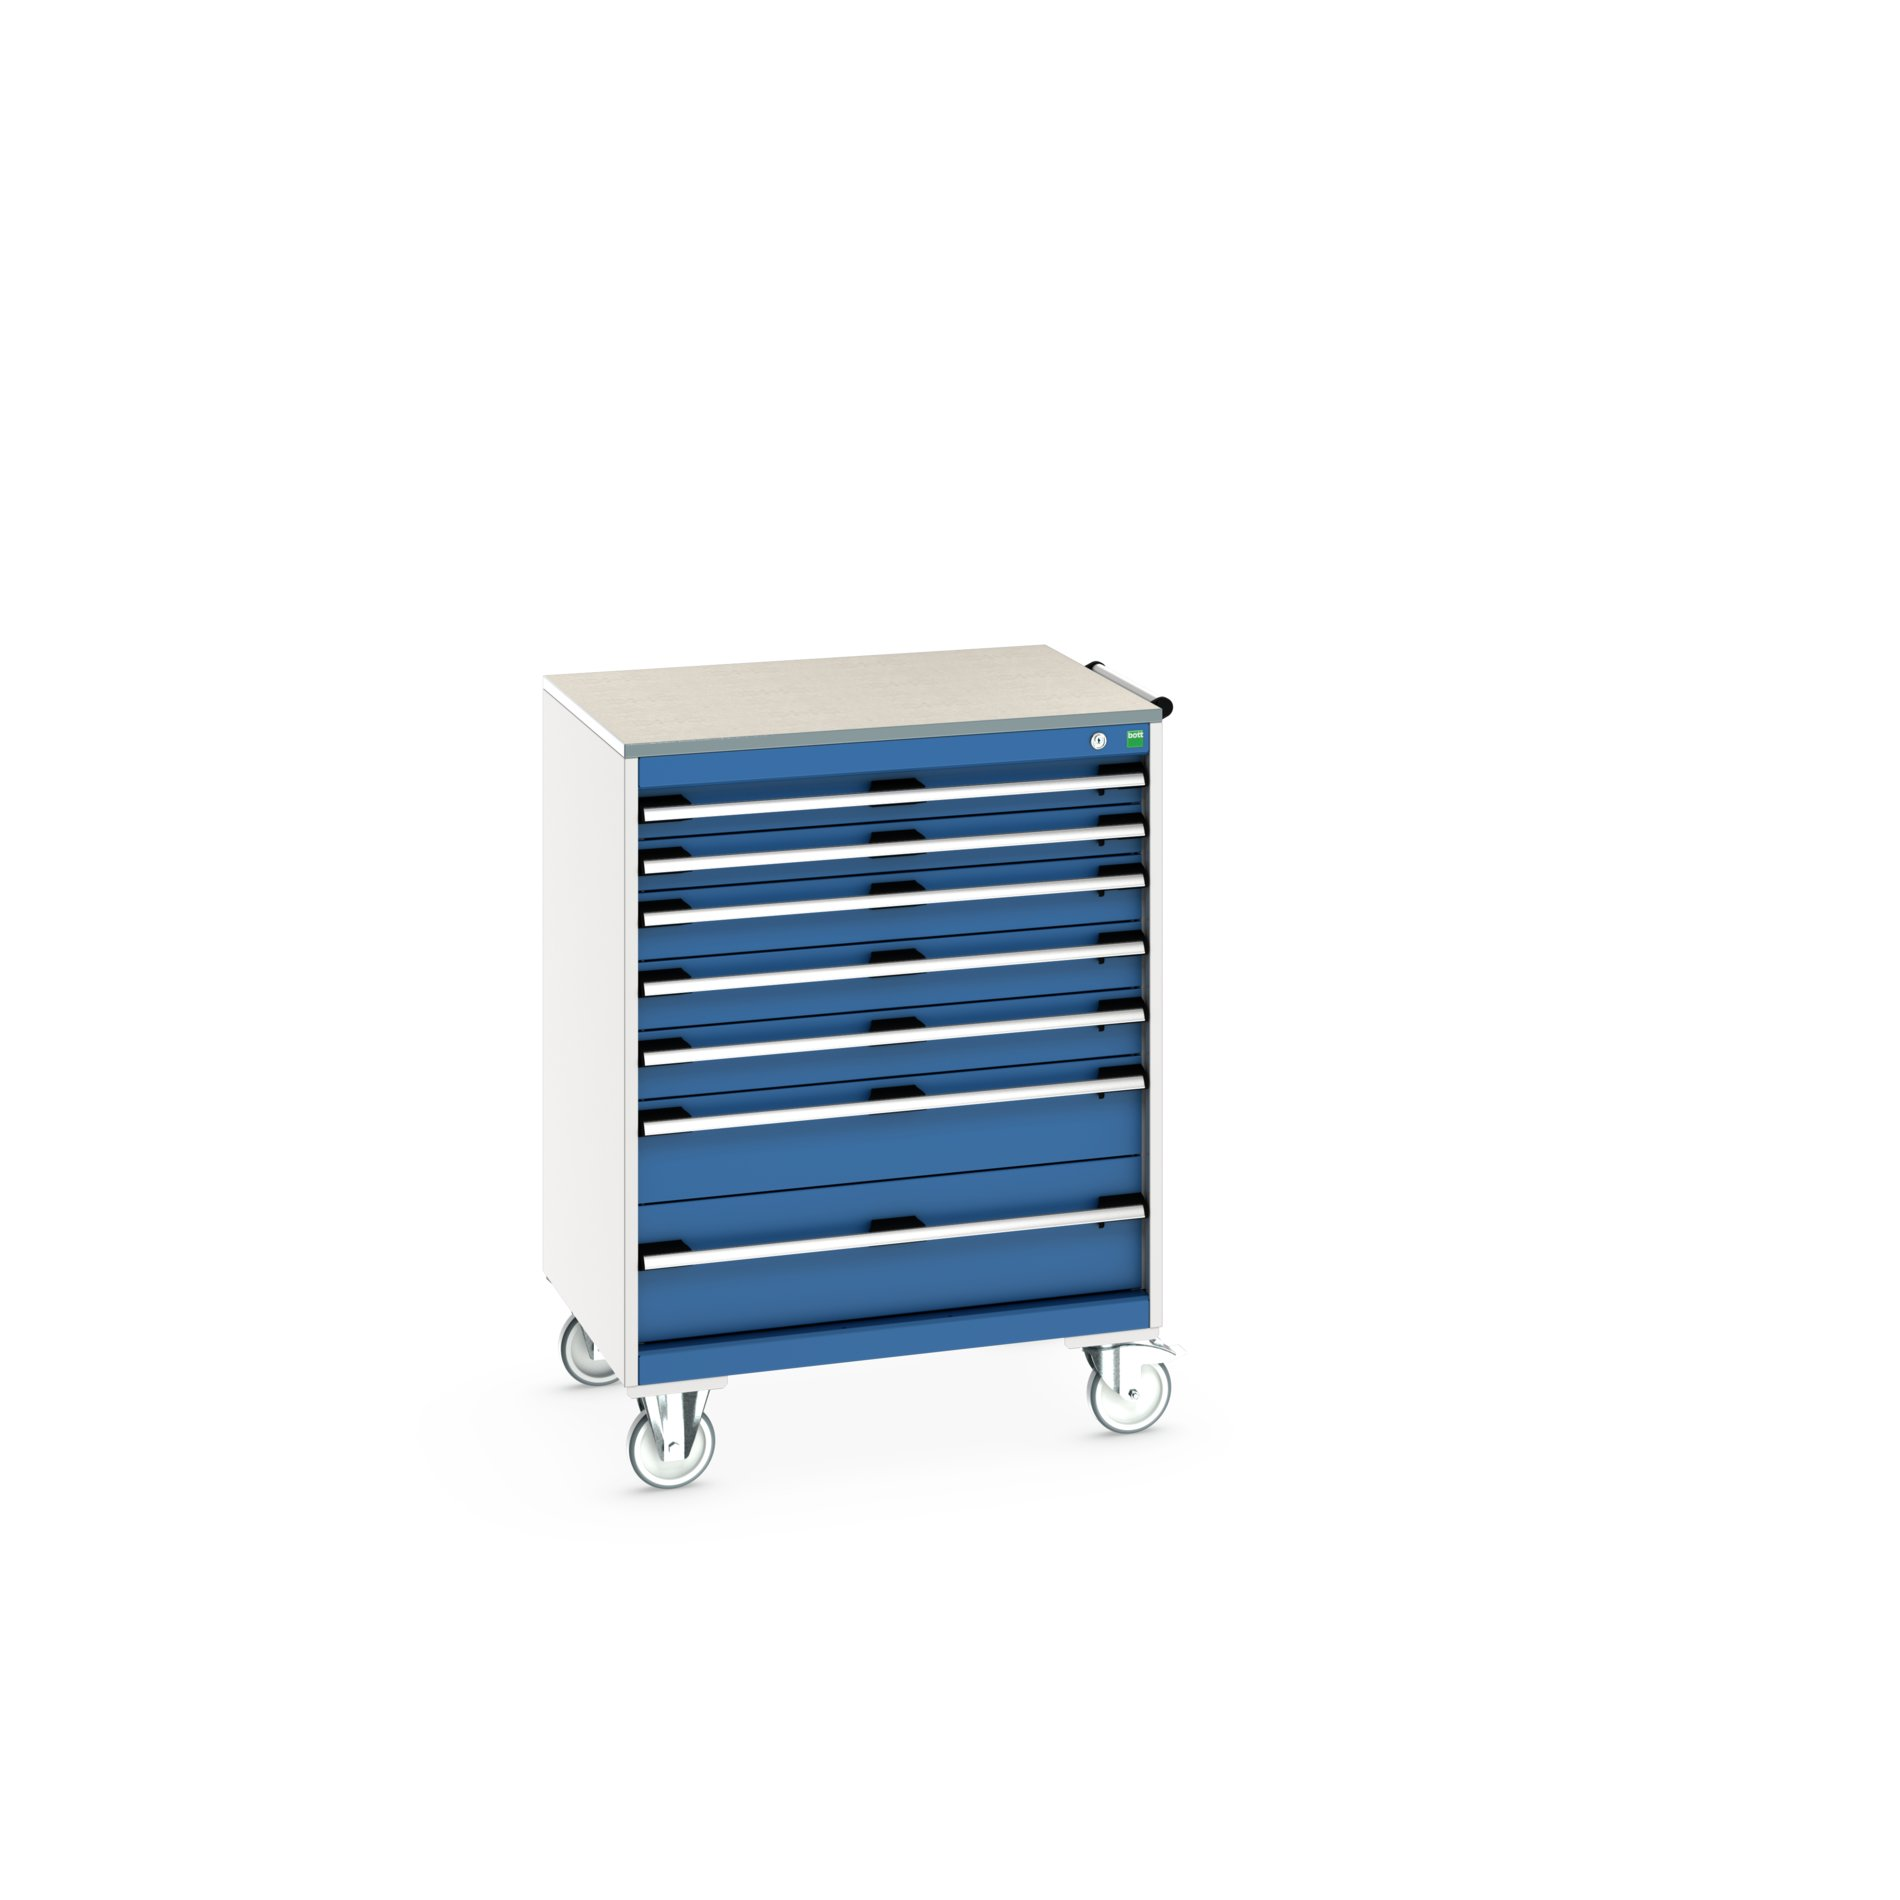 Bott Cubio Mobile Drawer Cabinet With 7 Drawers & Lino Worktop